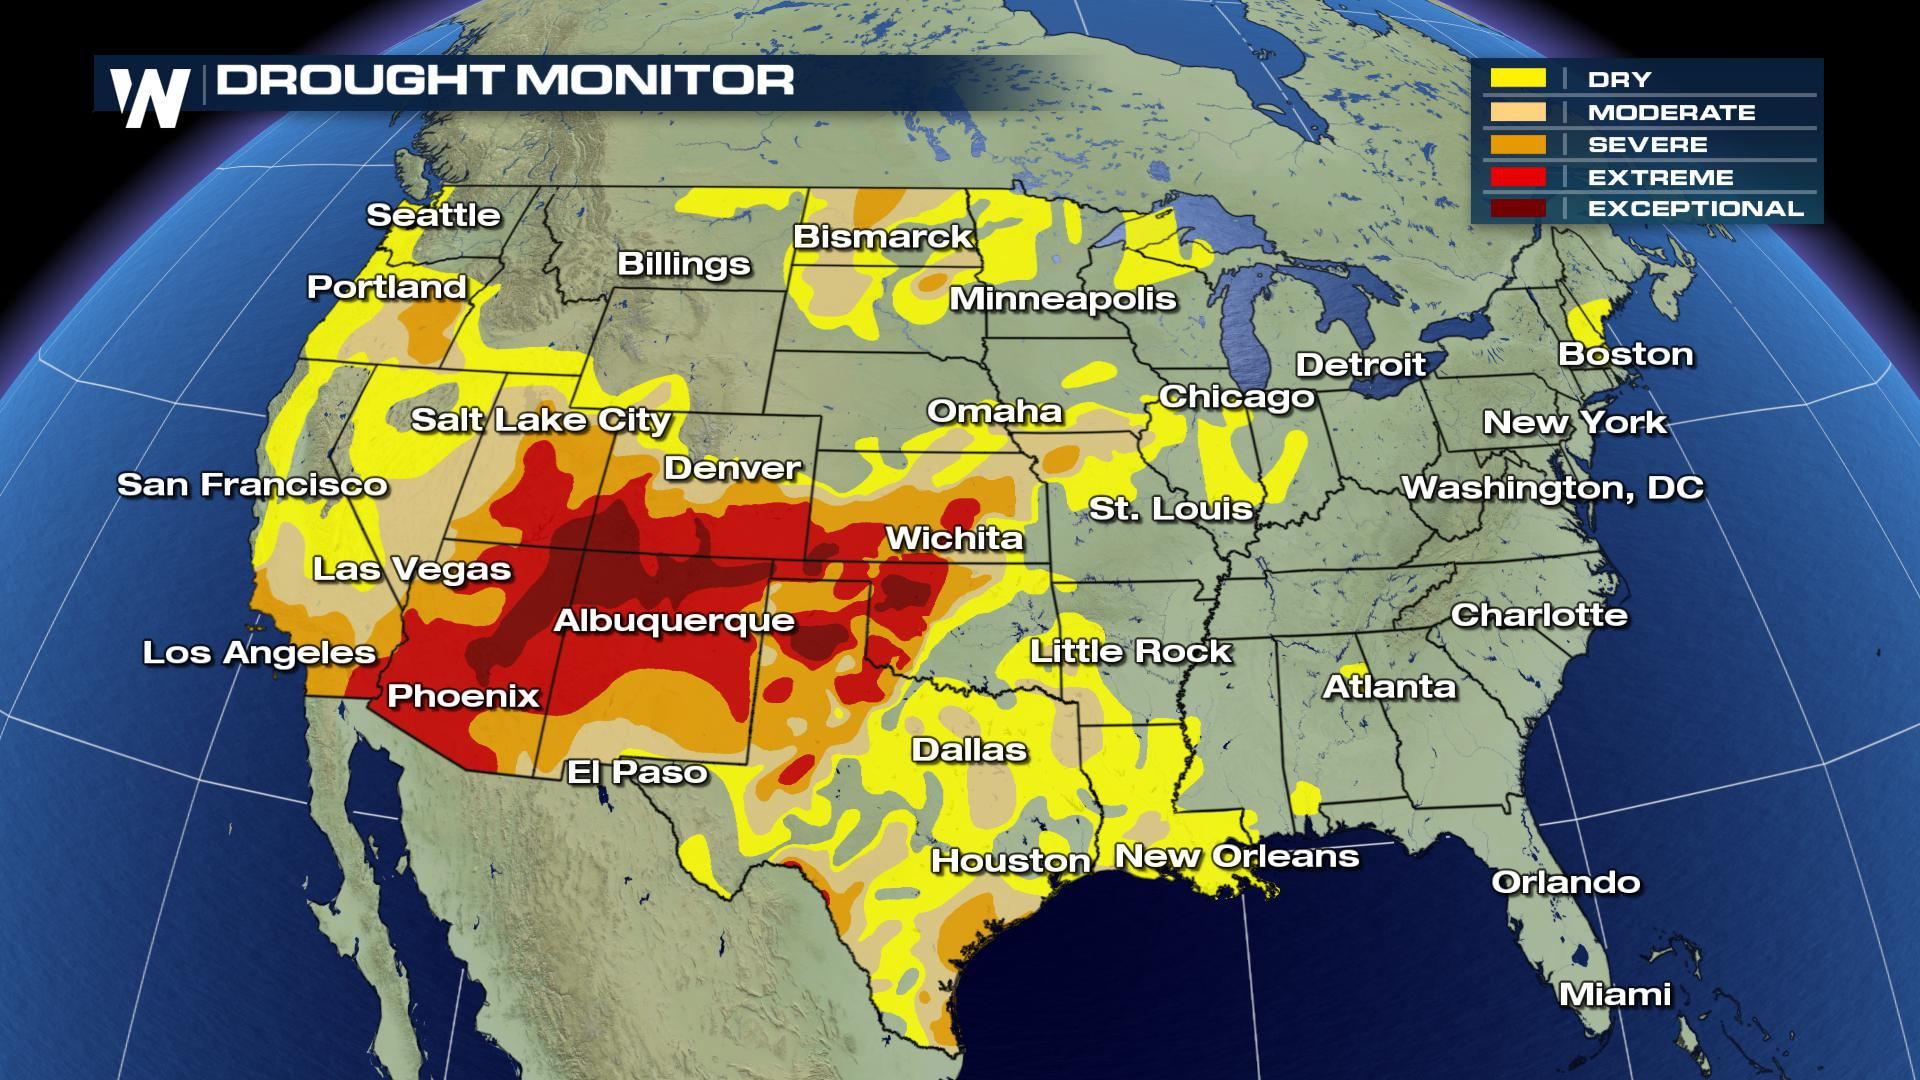 A Look at the Latest US Drought Monitor